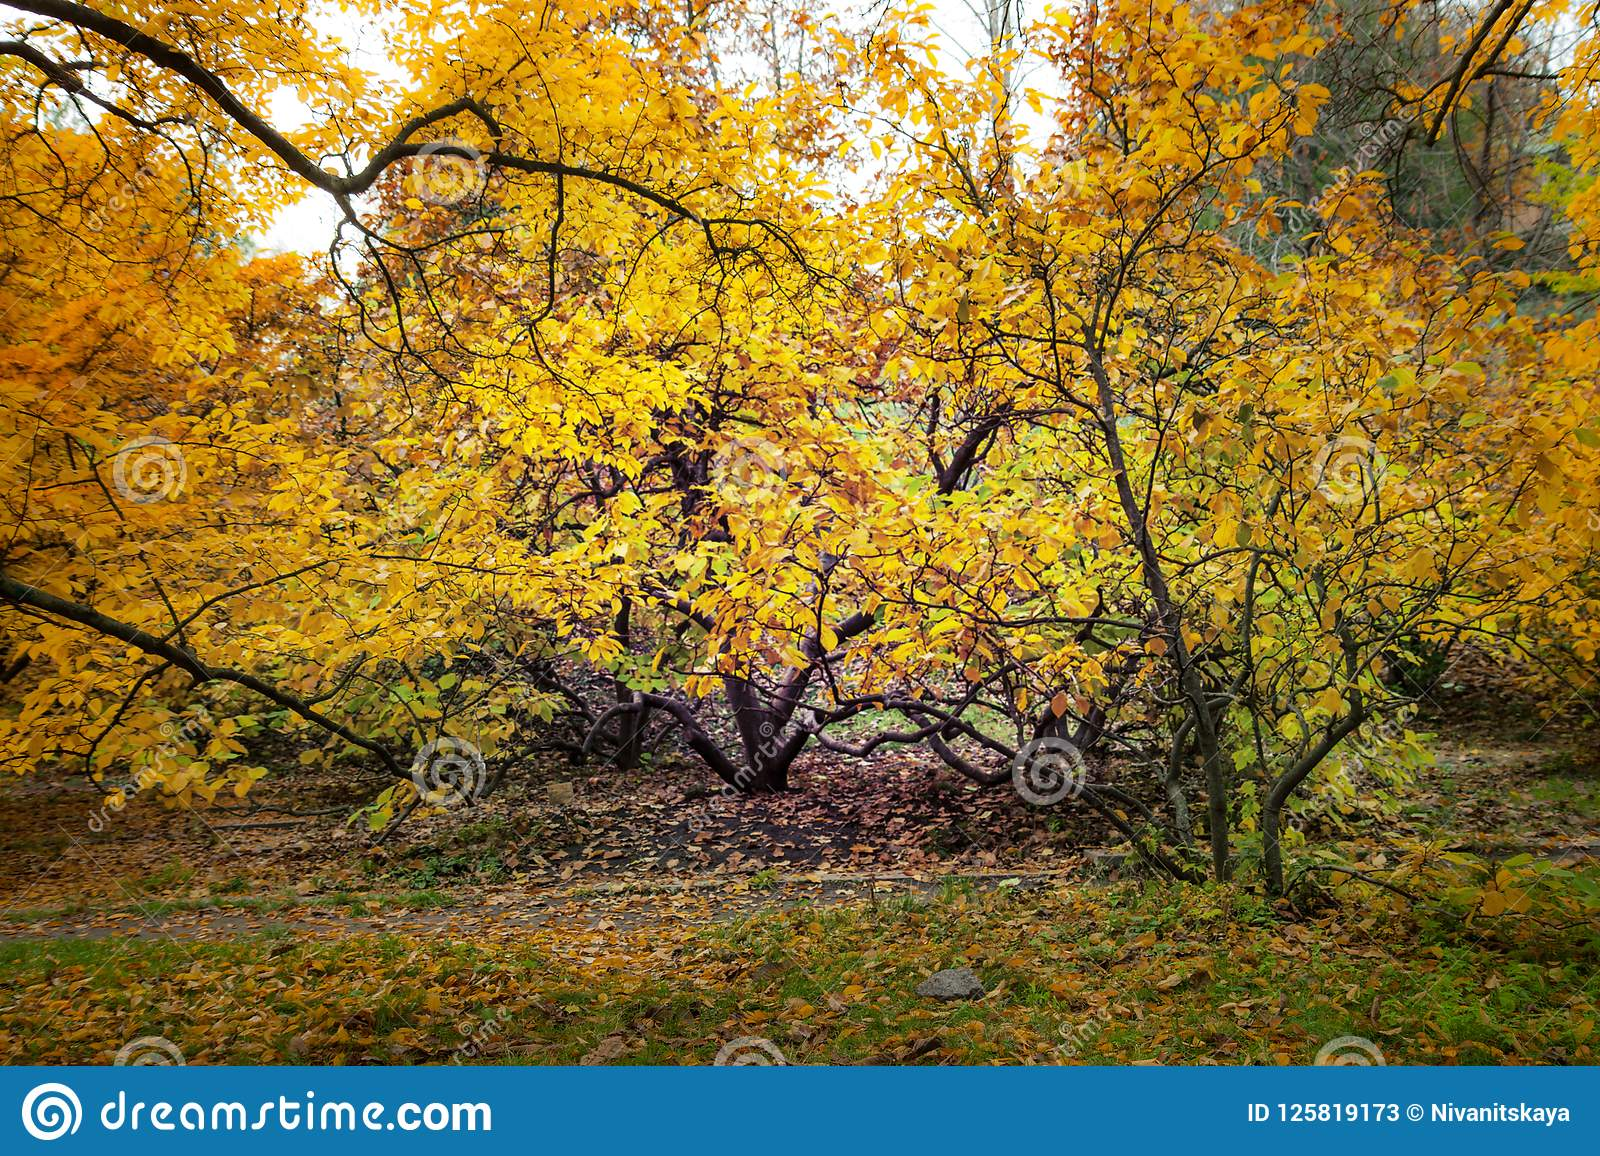 A Beautiful Autumn Tree With Yellow Foliage. Magnolia In The ...